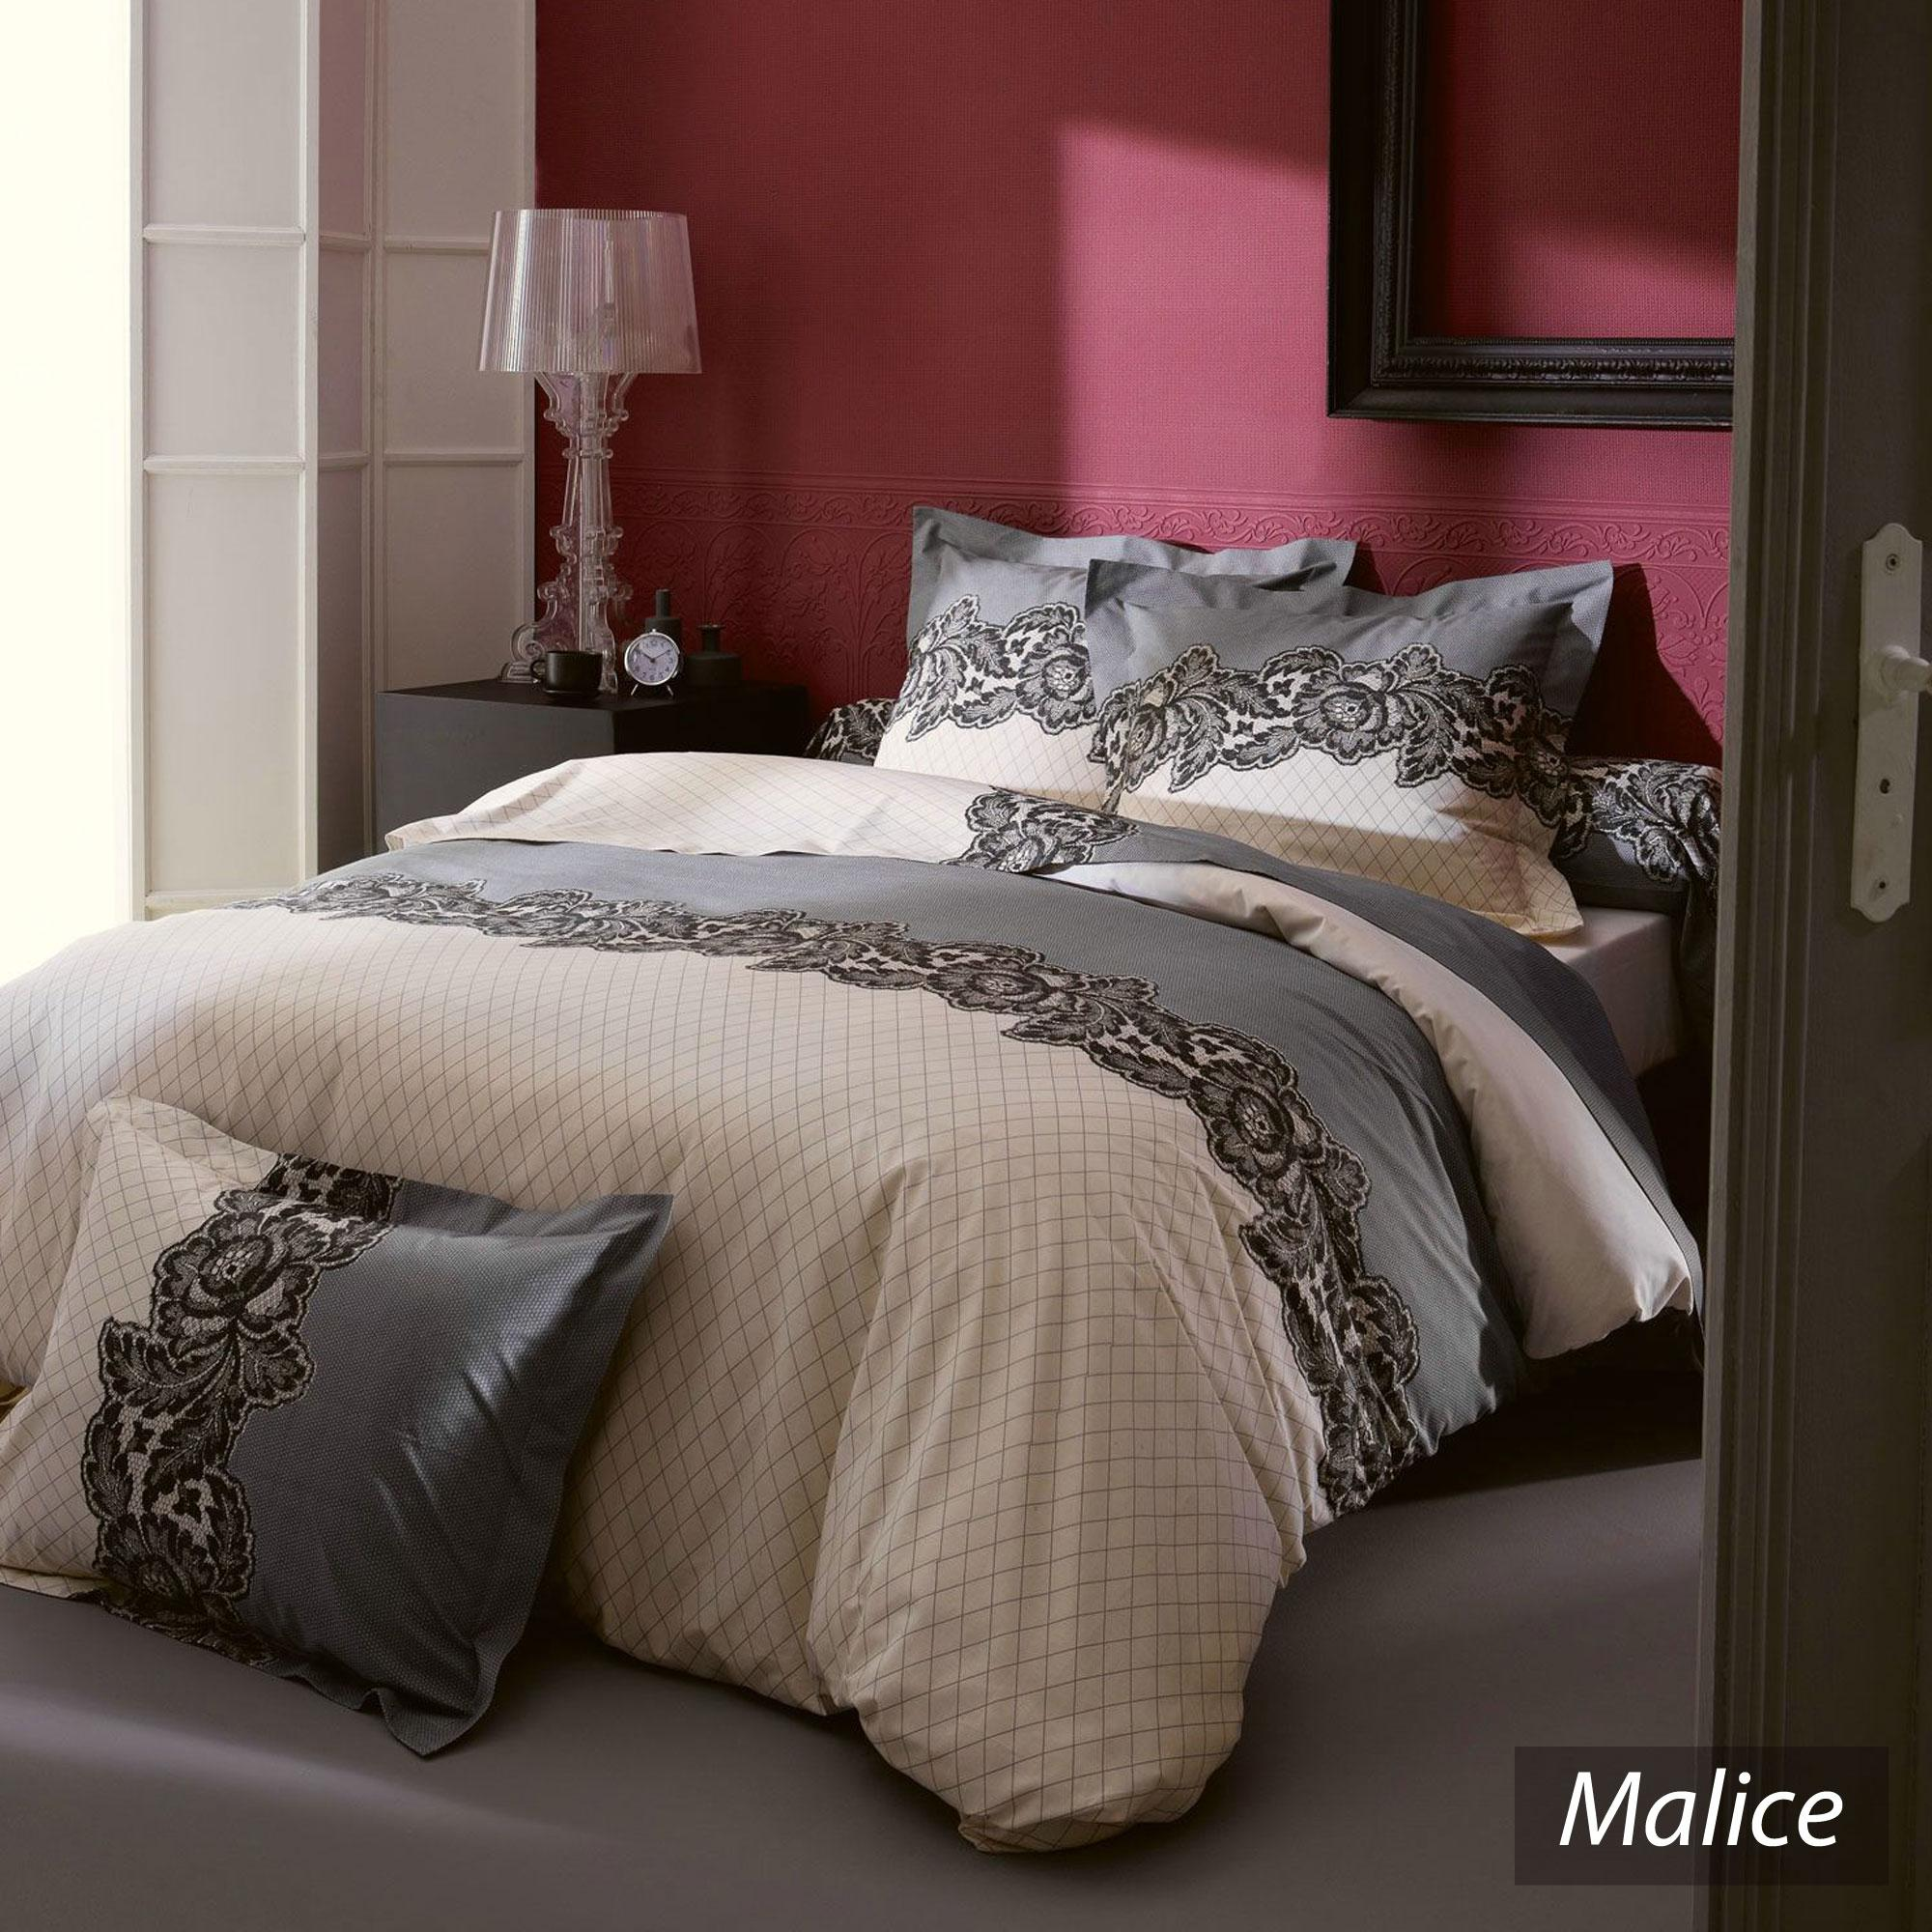 housse de couette 300x240 cm malice linnea vente de. Black Bedroom Furniture Sets. Home Design Ideas